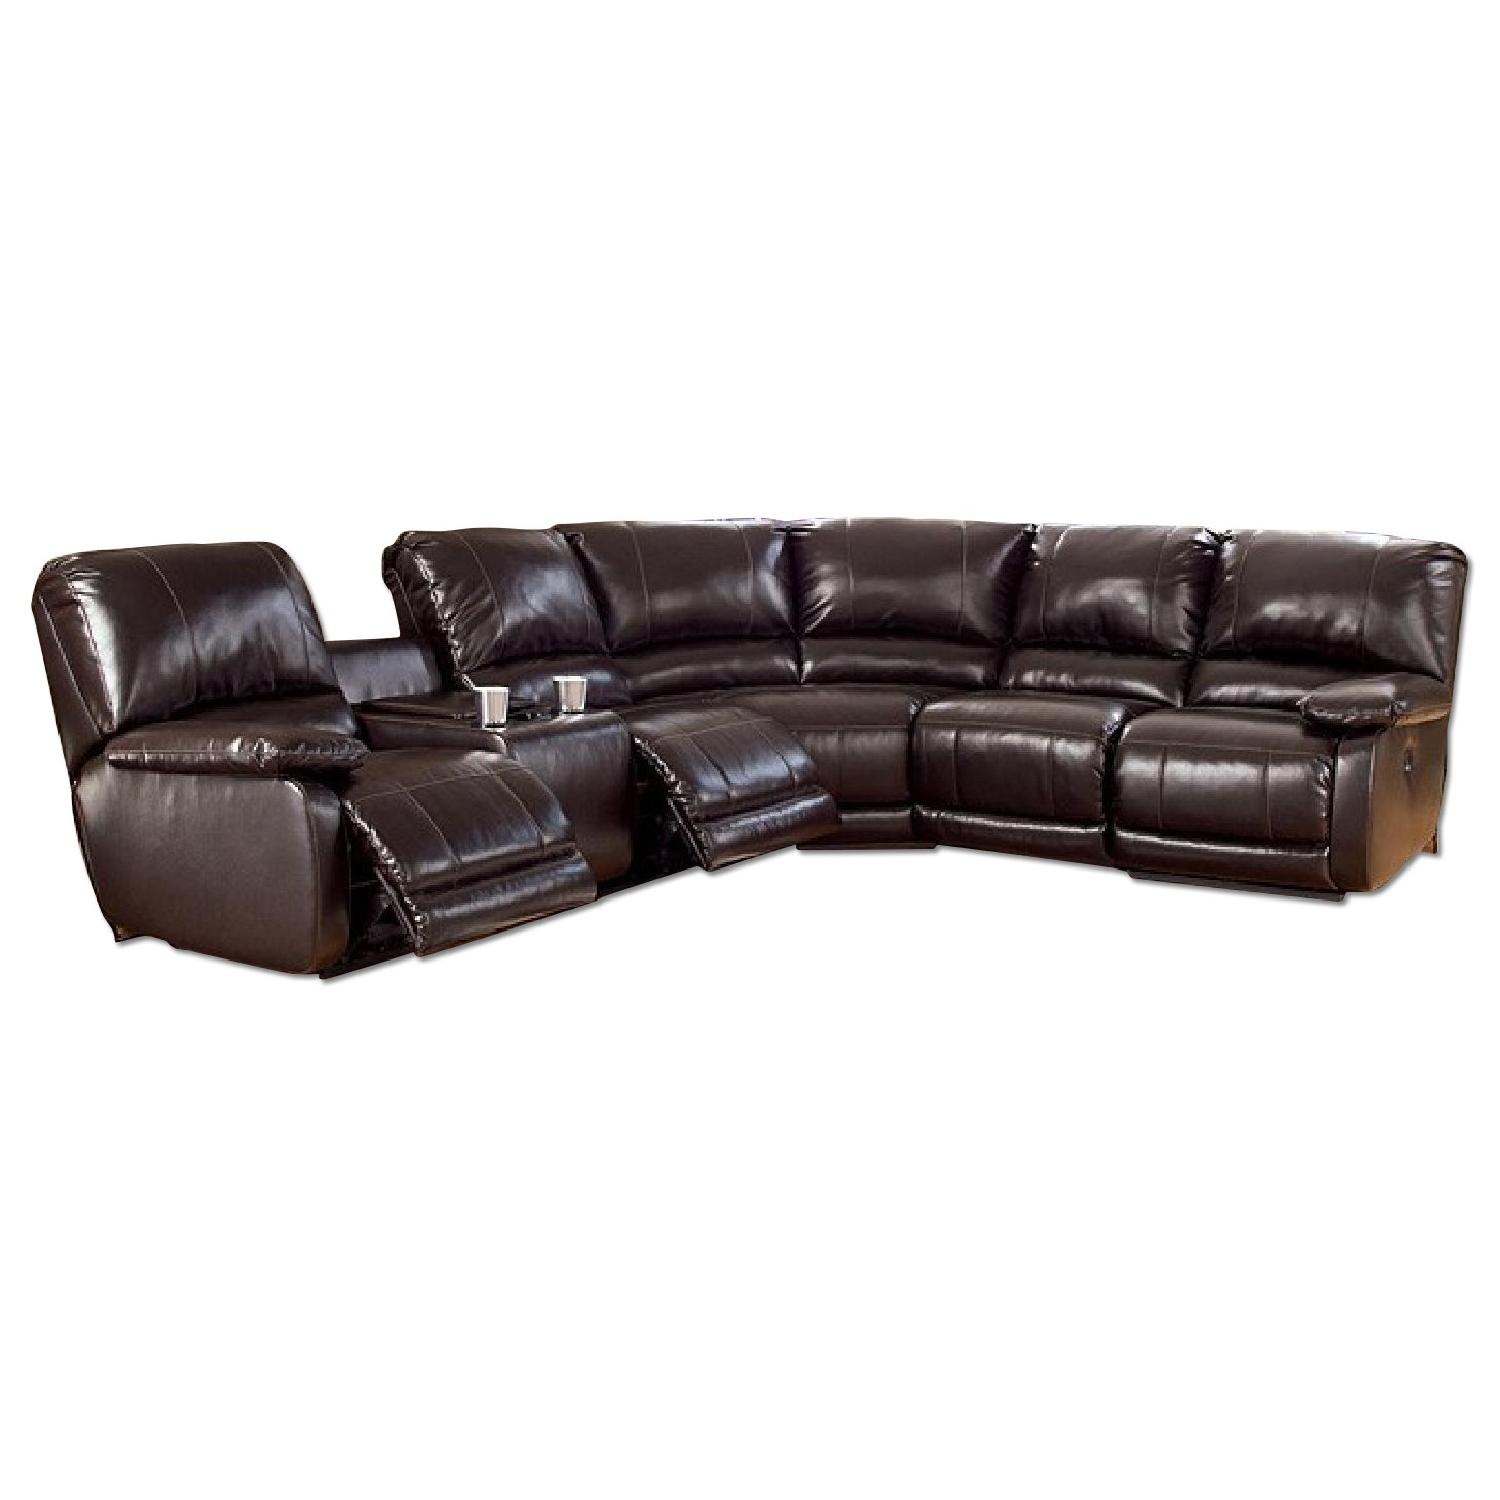 Ashley's Dark Brown Leather Blend 4 Power Recliner Sectional - image-2